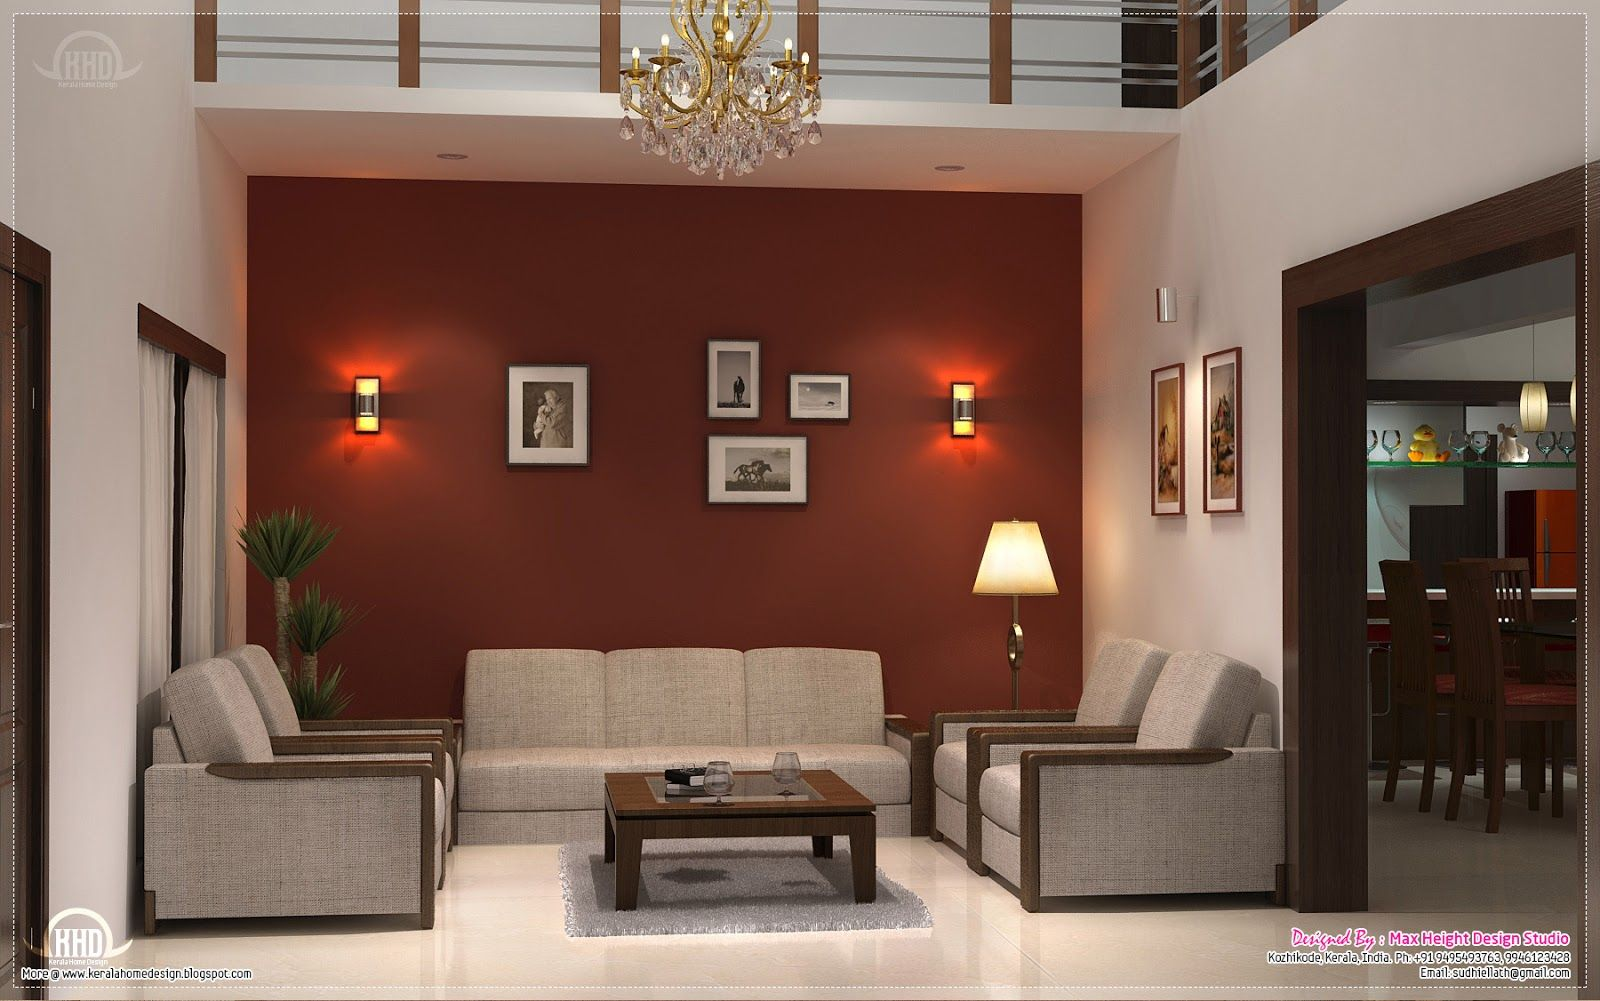 Living Room Interior Design In Kerala images of western style homes in kerala - google search | place to